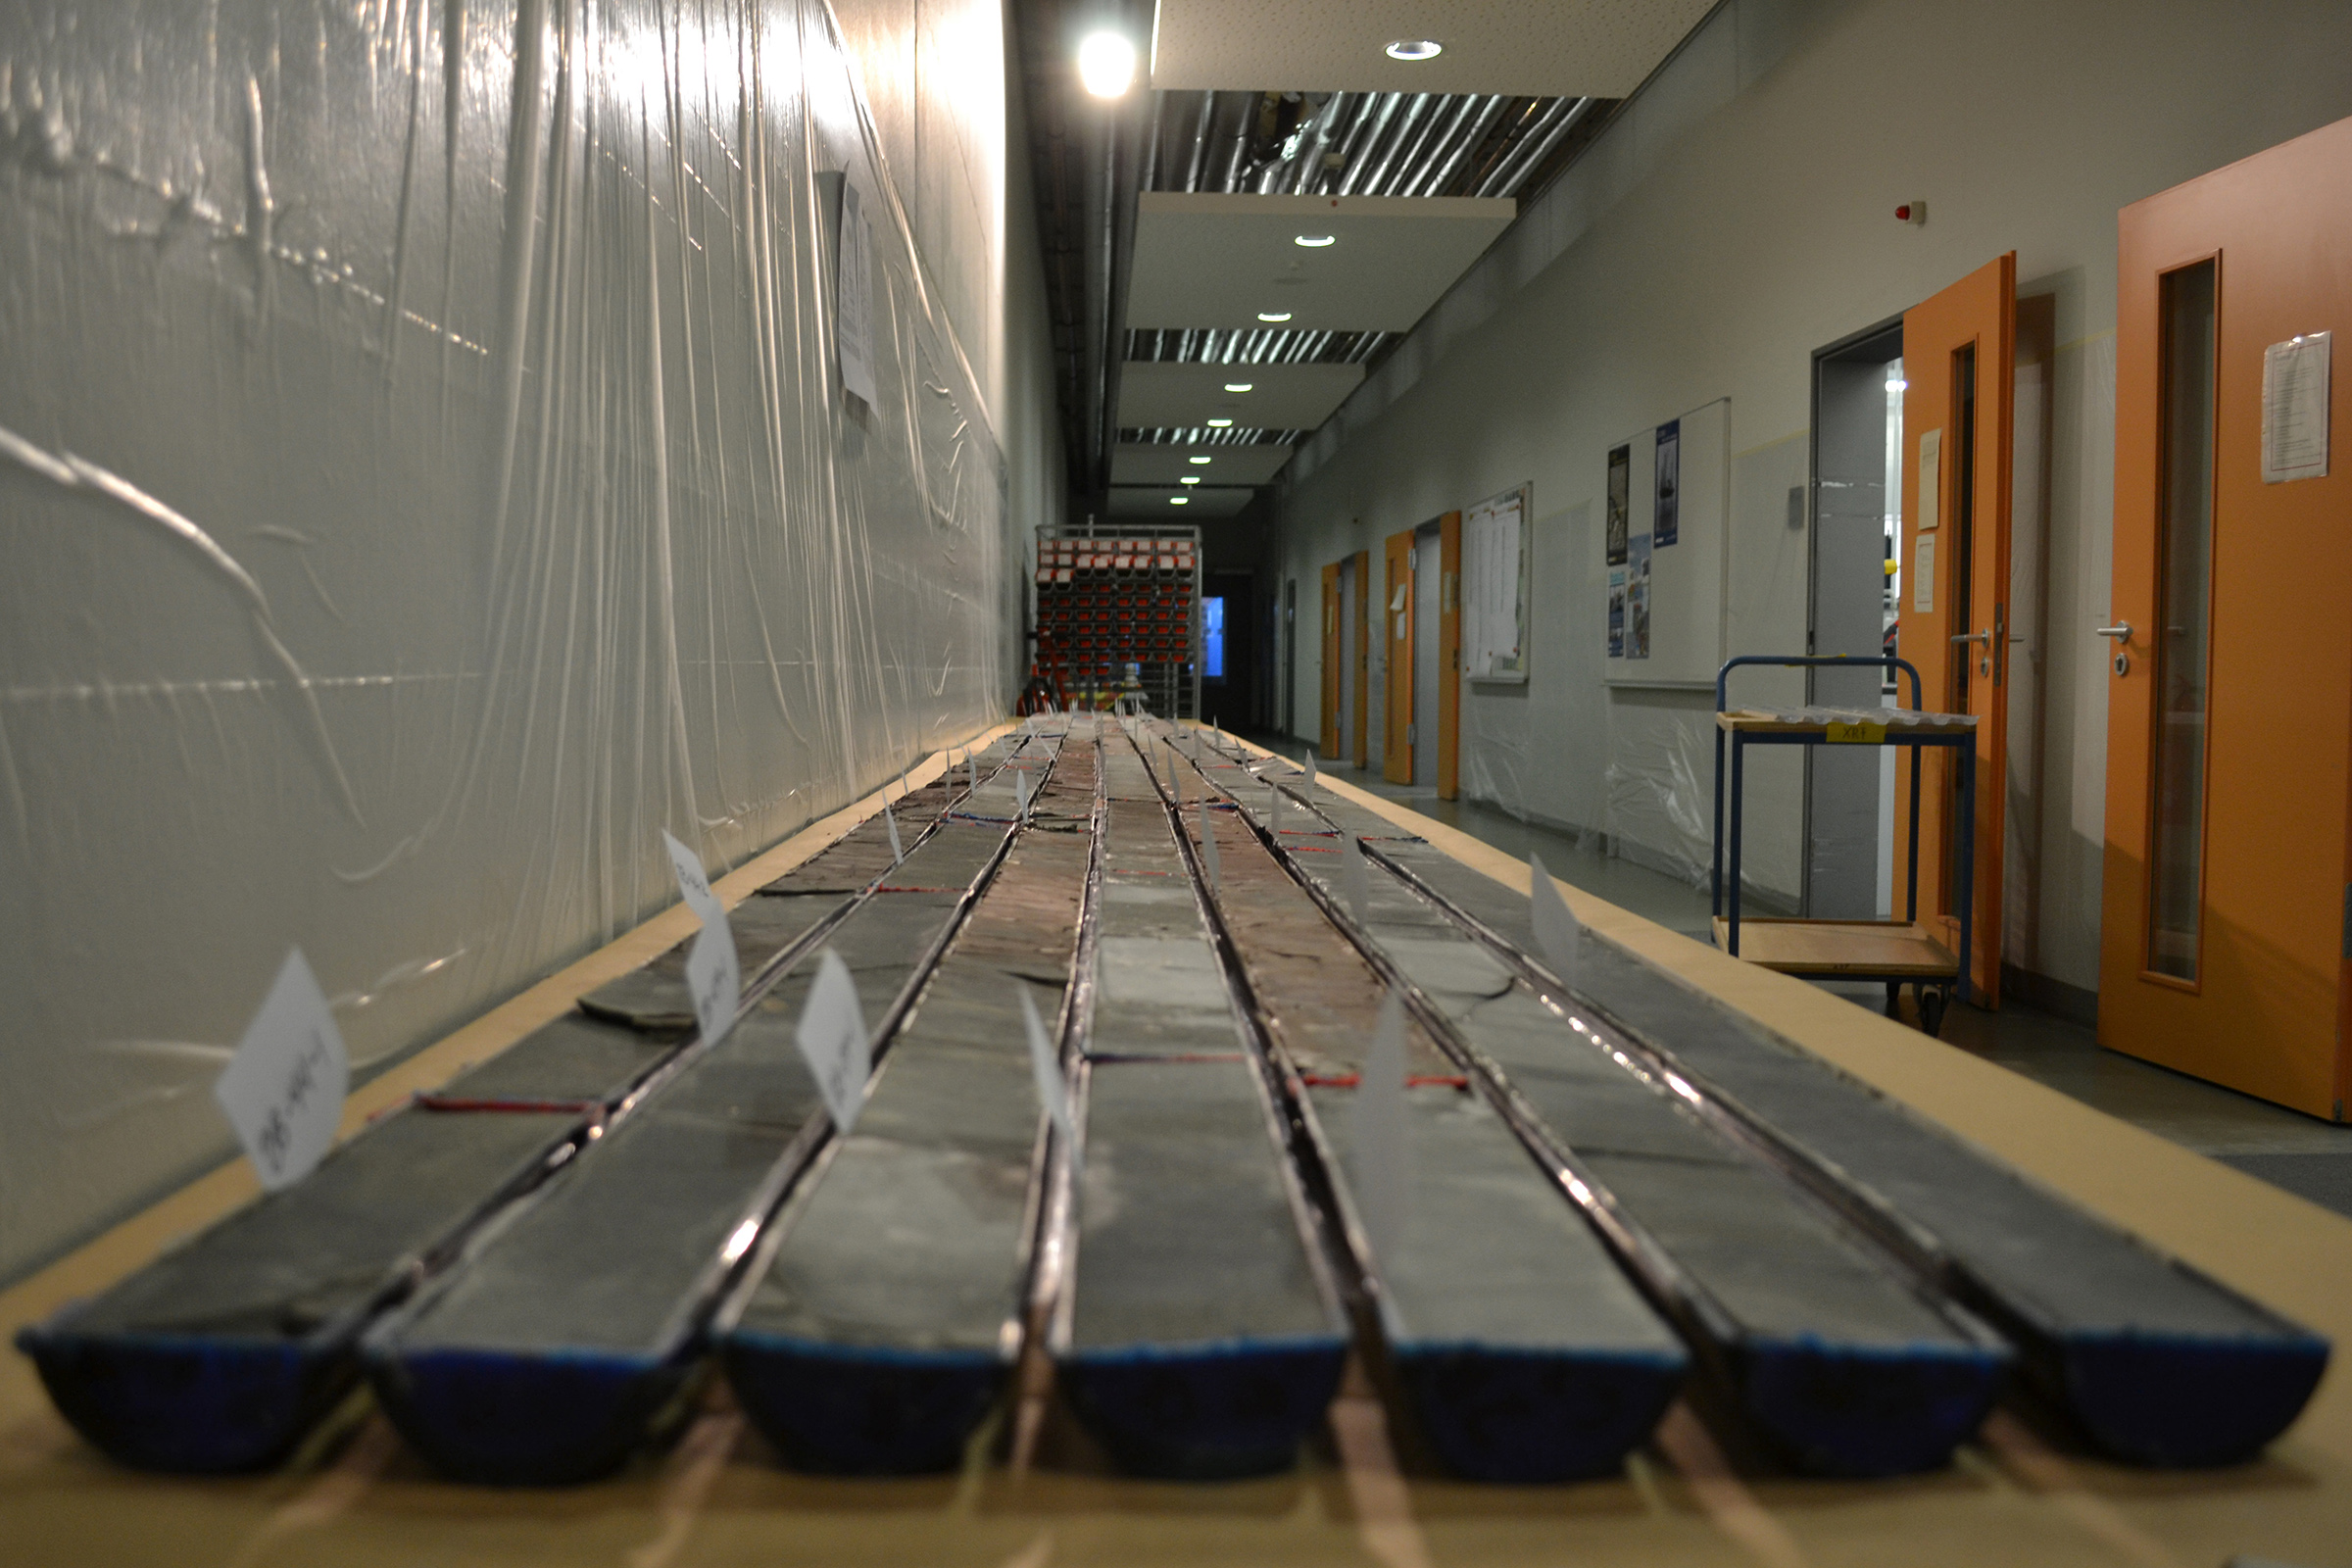 Sediment cores that were drilled from Wyoming's Bighorn Basin and then sectioned for study are shown at a repository at the University of Bremen, Germany. A study of the cores led by University of Utah geochemist Gabe Bowen found that carbon emissions to the atmosphere during a global warming period almost 56 million years ago were more similar to today's human-caused climate change than previously was believed.